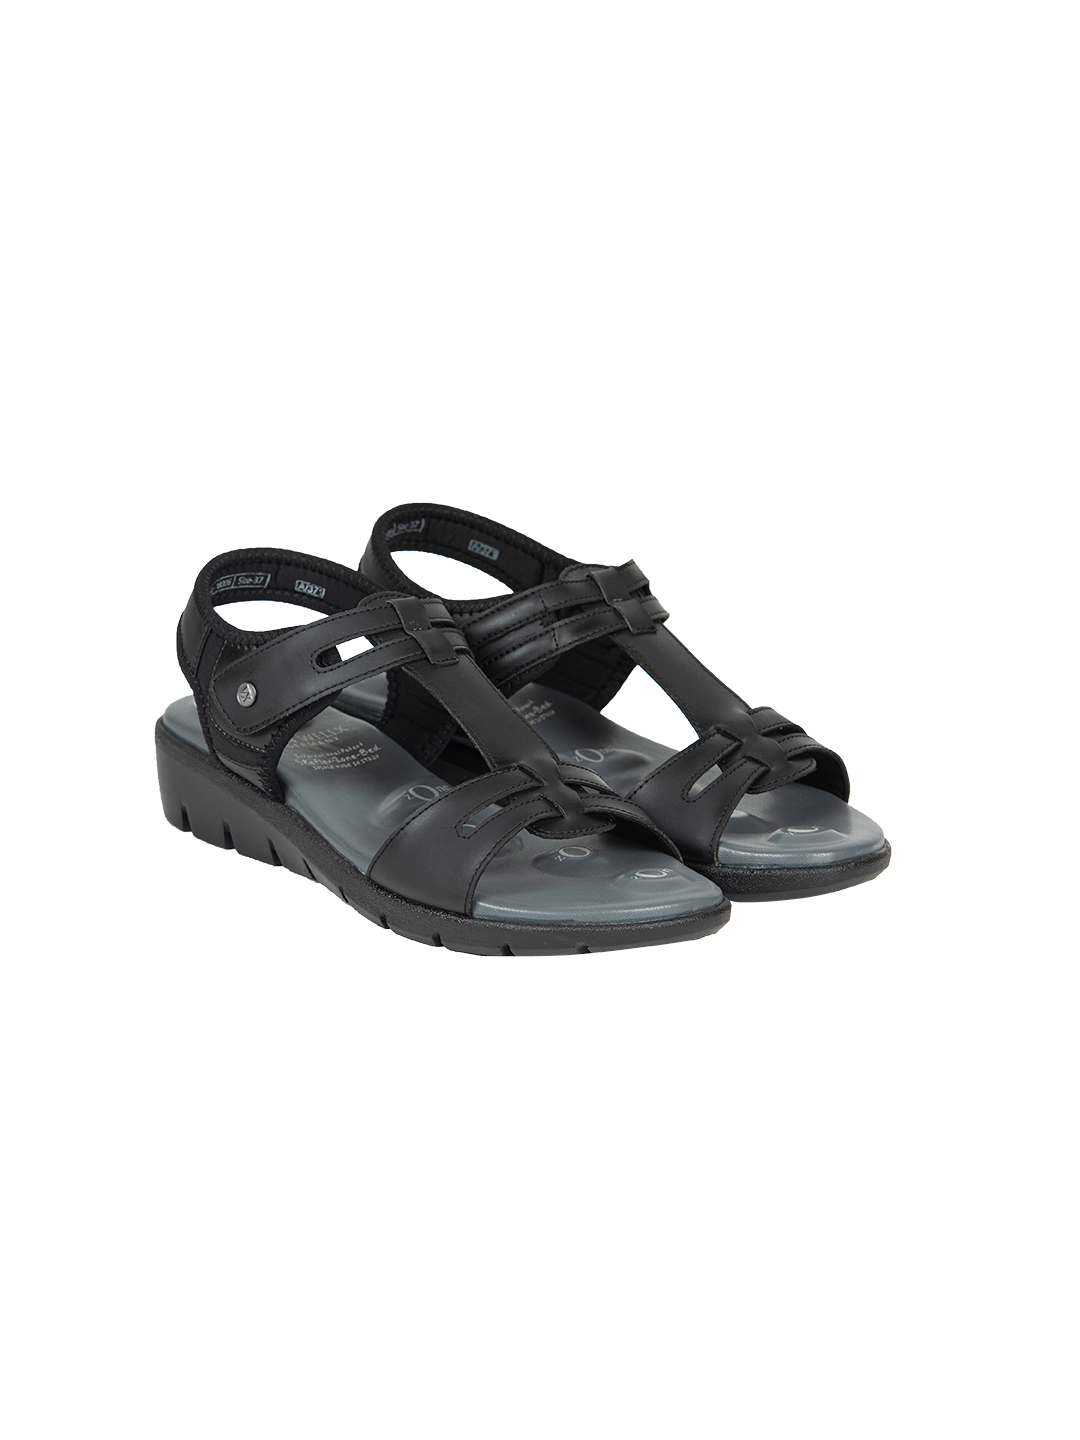 Buy VON WELLX GERMANY COMFORT NOVA BLACK SANDALS In Delhi